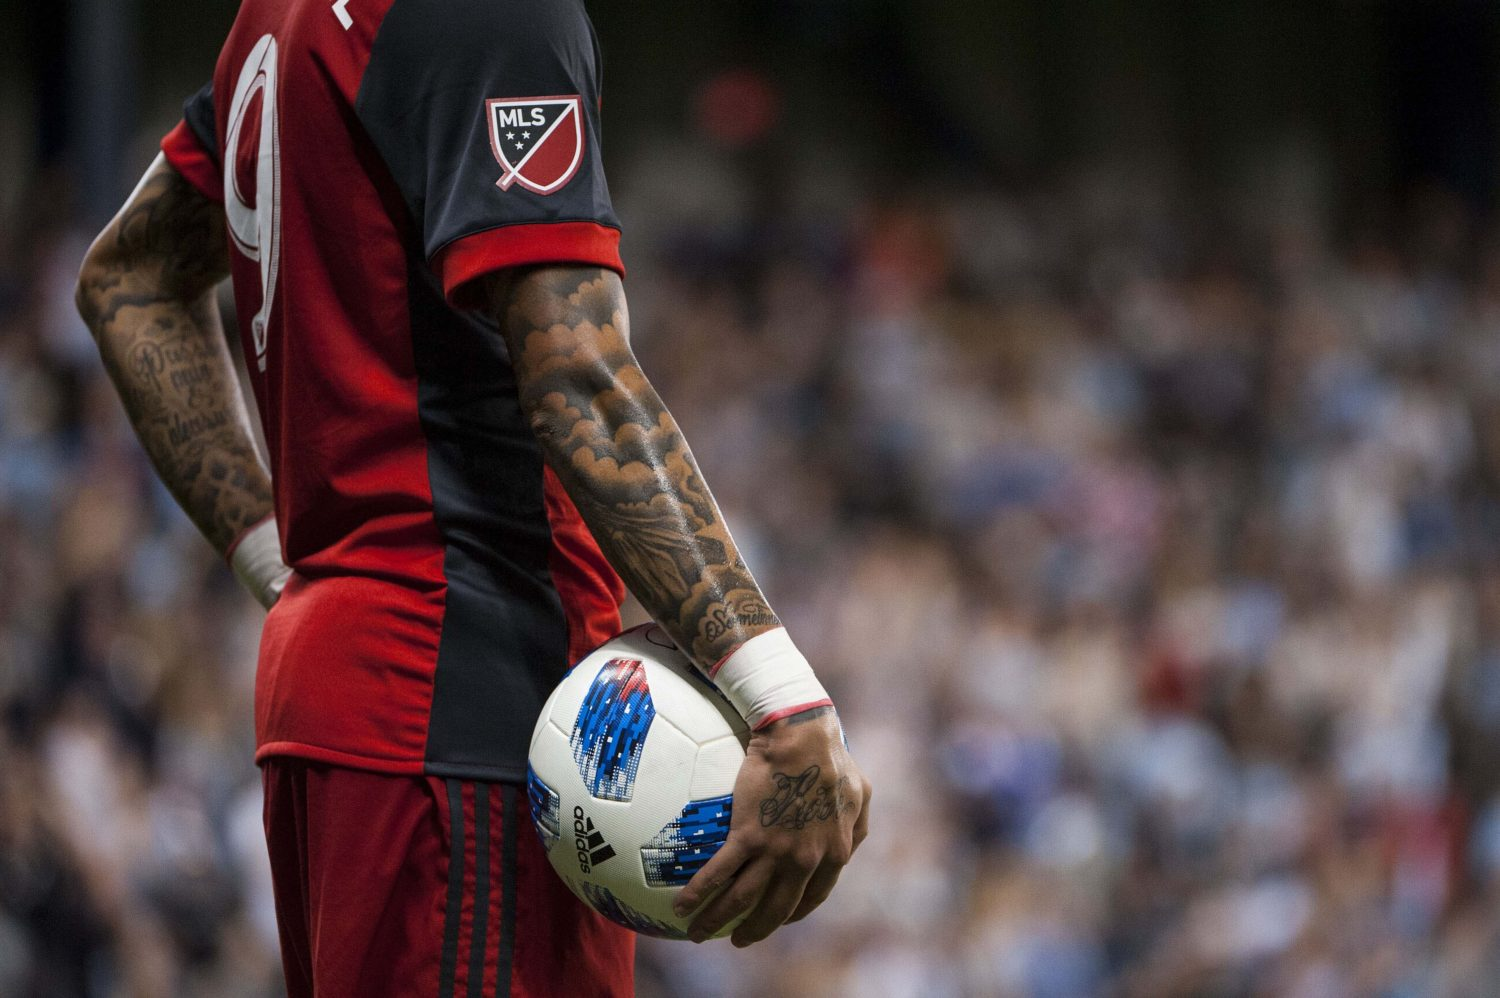 Gregory van der Wiel - Holding a Adidas ball during Toronto FC vs Sporting KC